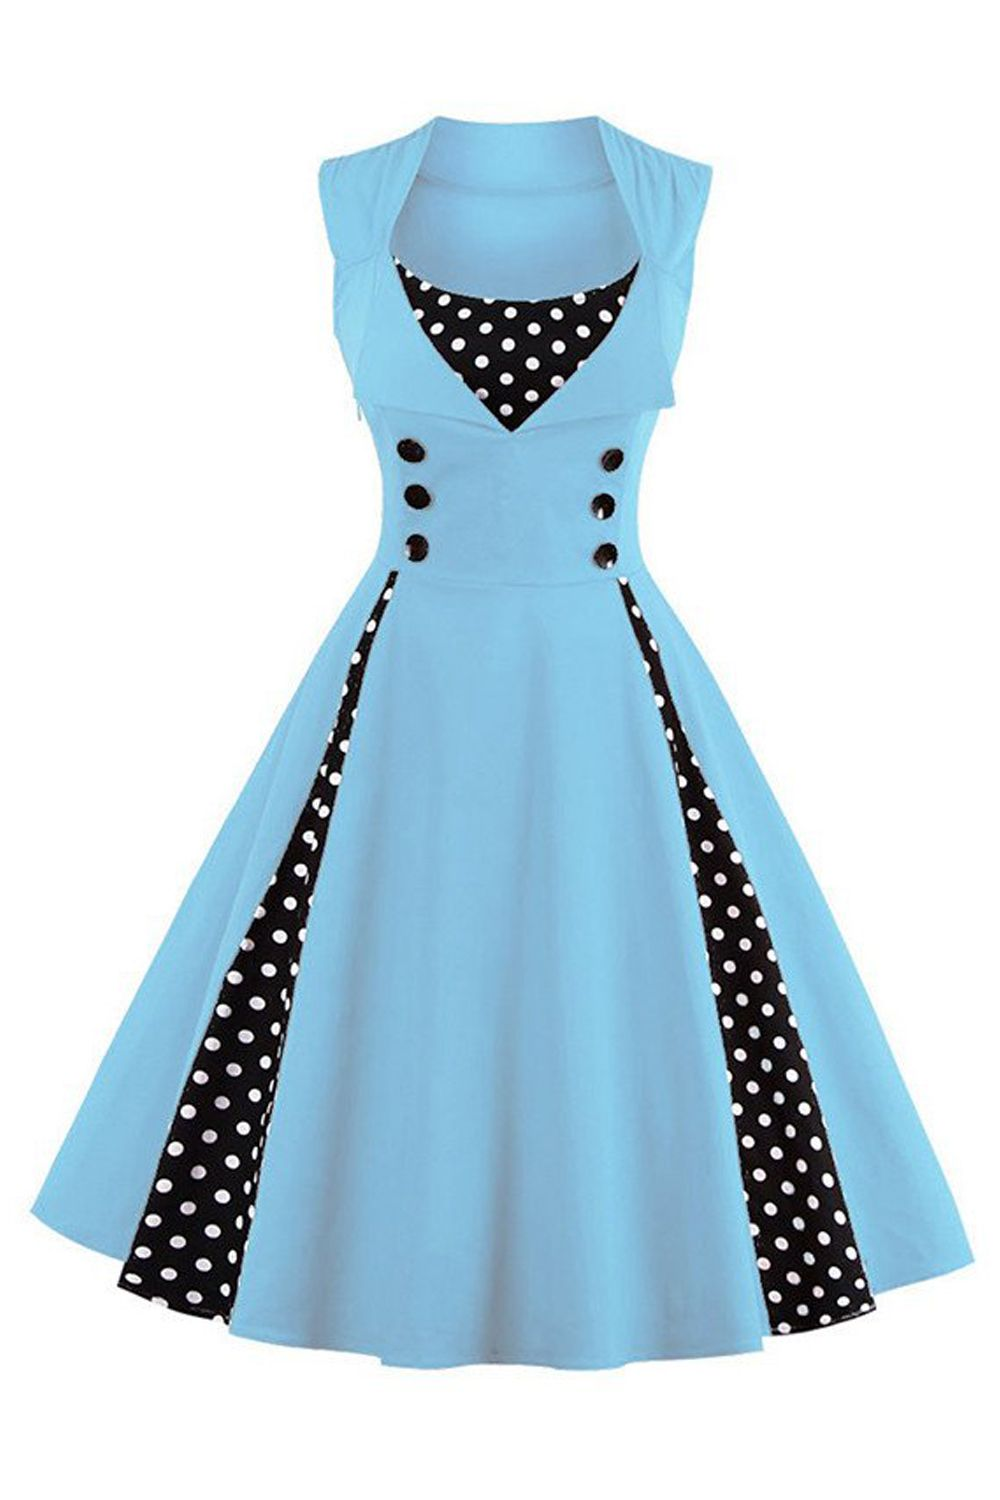 The Atomic Baby Blue and Black Polka Dot Rockabilly Party Dress ...